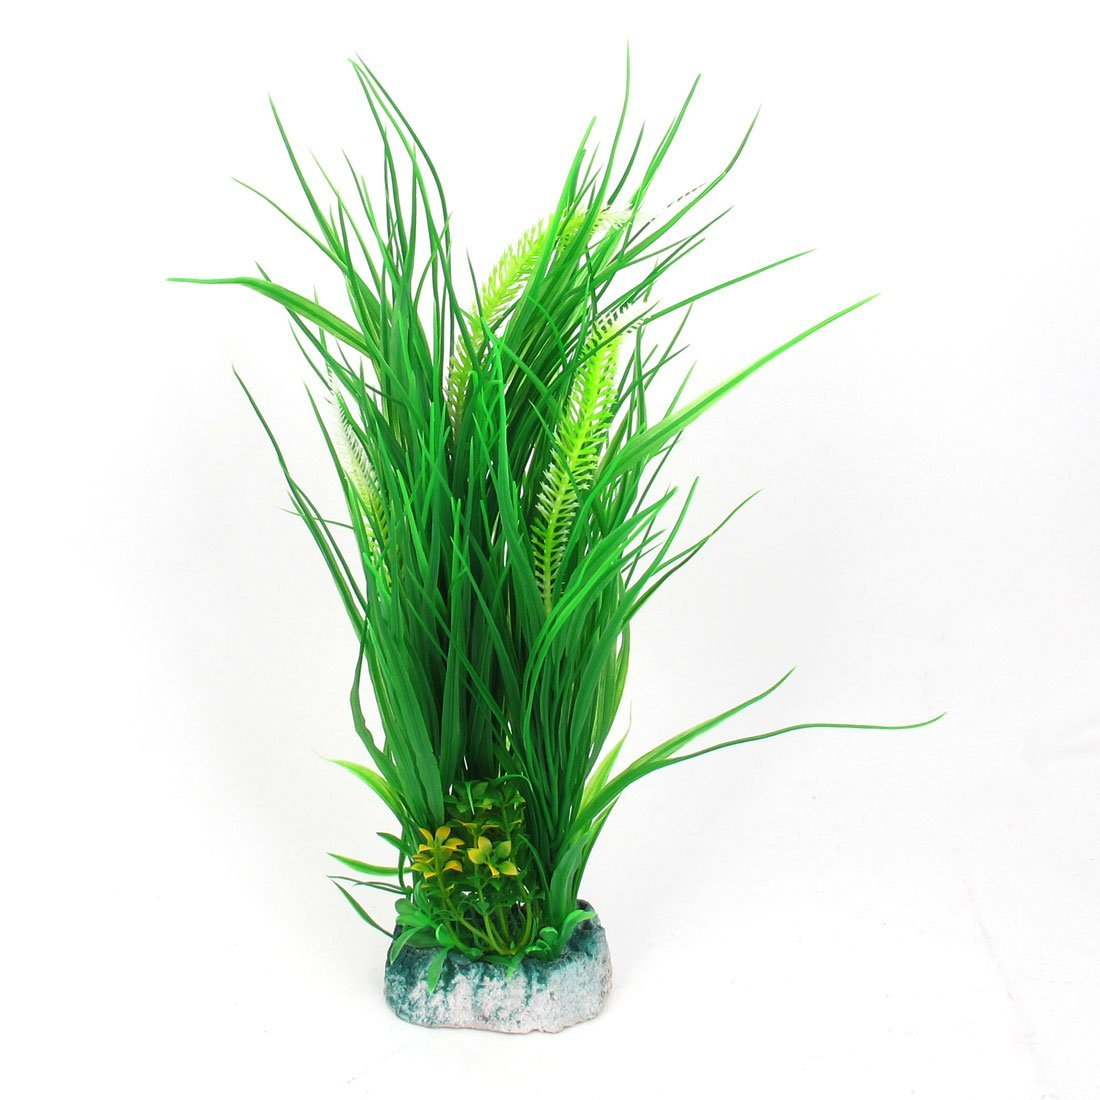 Jardin Plastic Aquascaping Plant Grass for Fish Tank, 17-Inch Height, Green